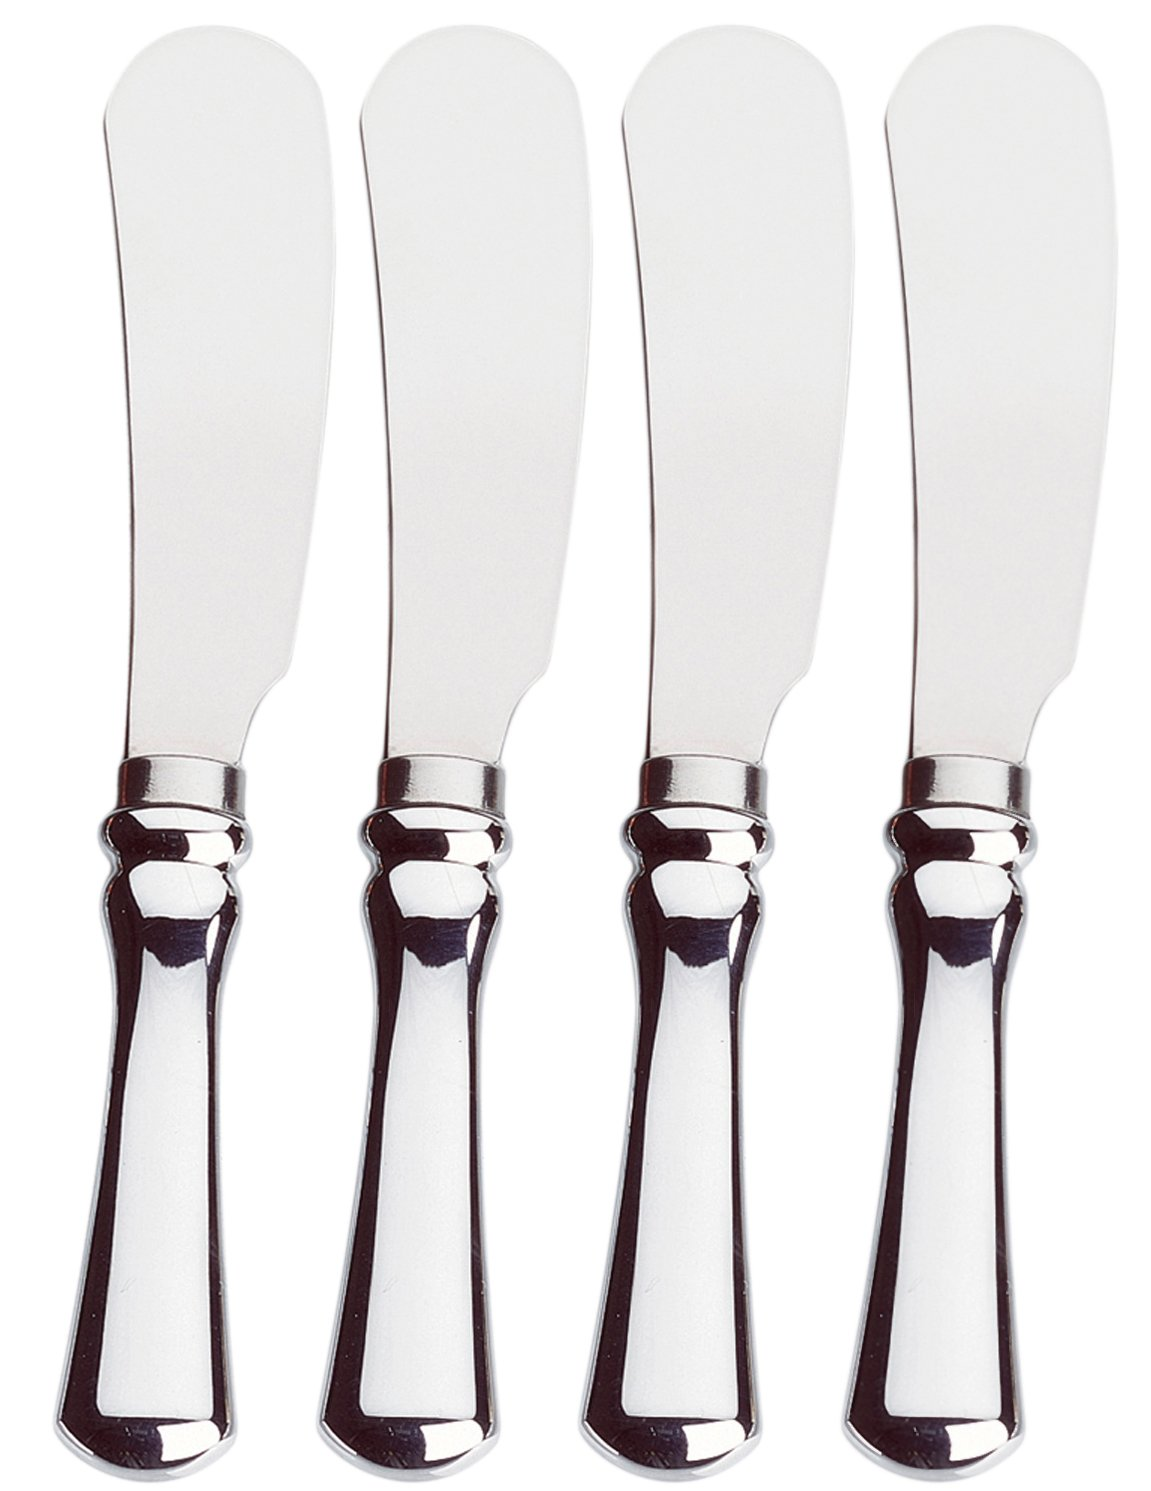 Amco Classic Spreaders, Stainless Steel Blades, Set of 4 by Amco 8452